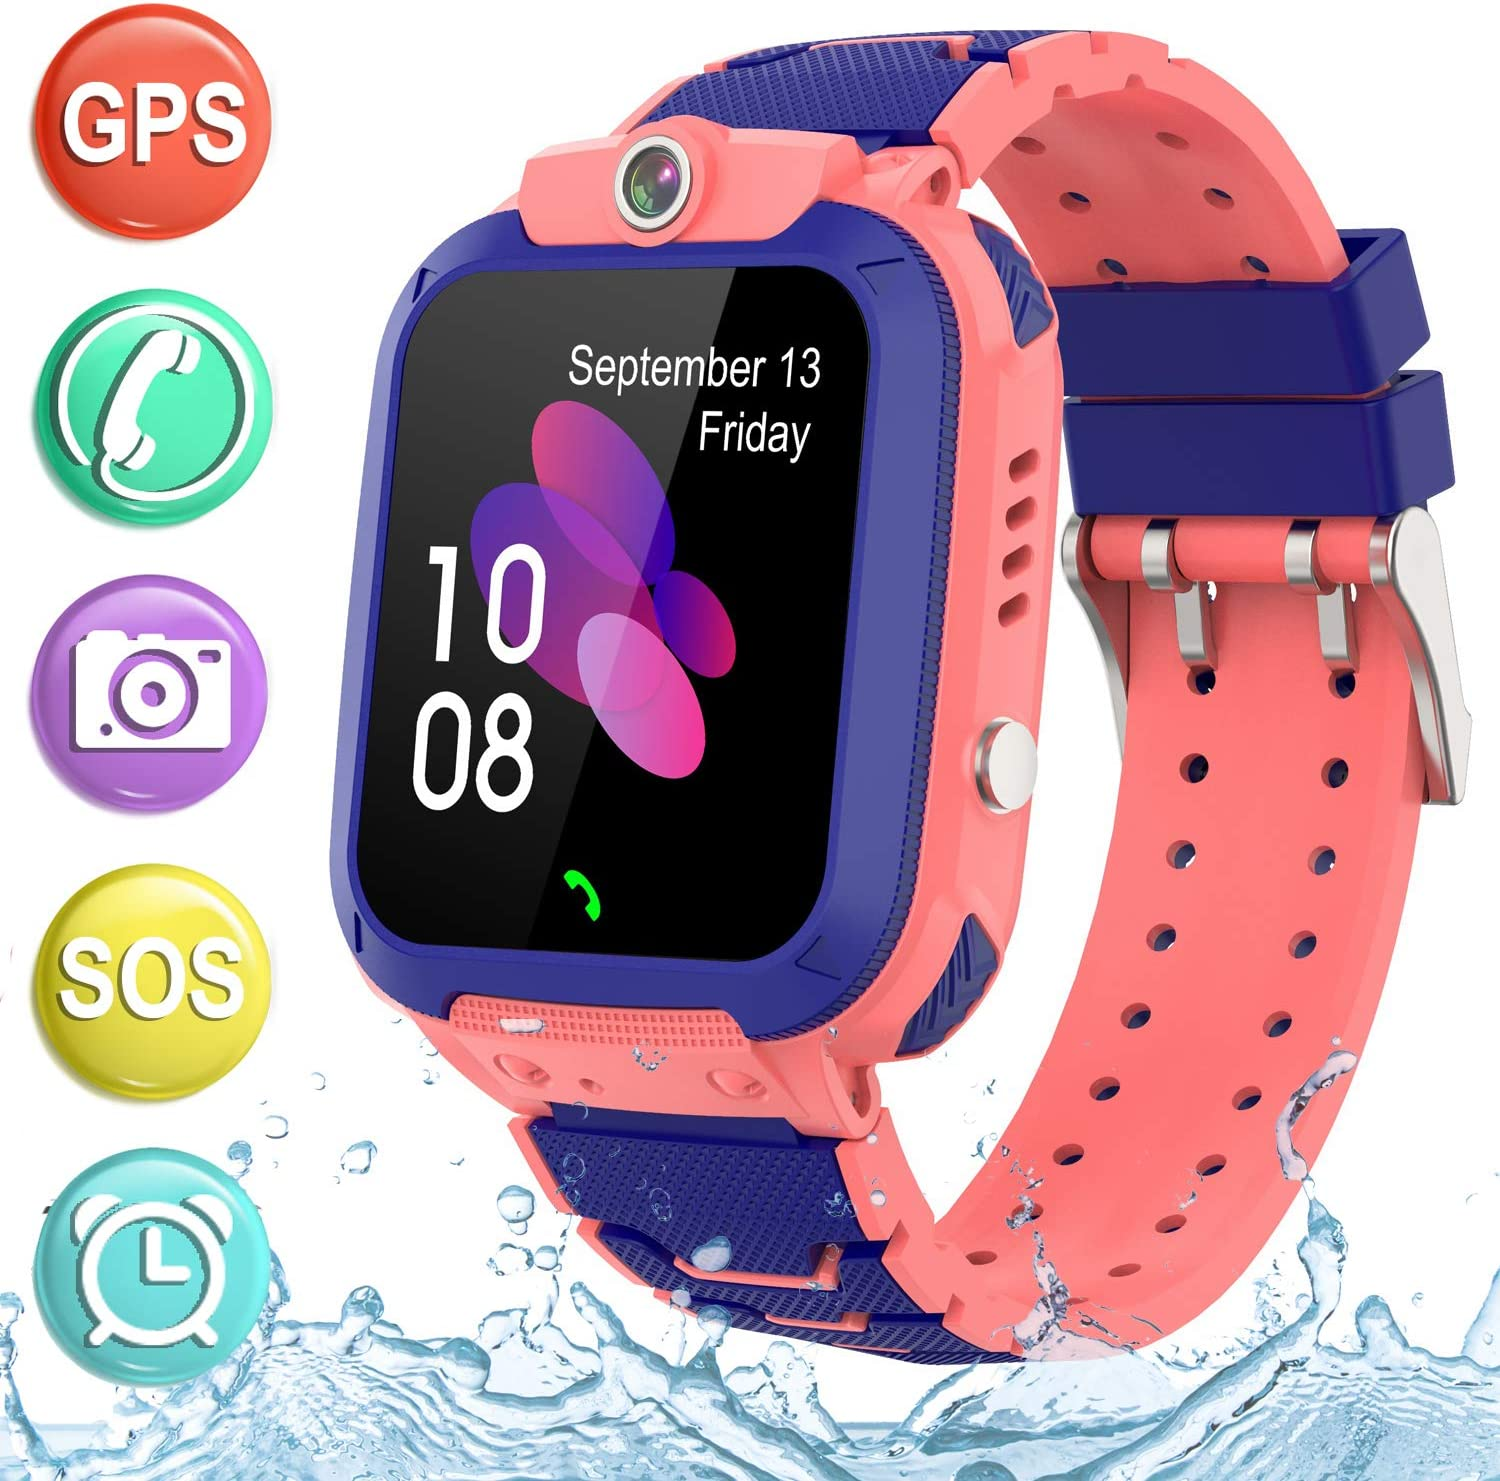 Kids Smartwatch GPS Tracker Phone - 2019 New Waterproof Children Smart Watches with 1.4